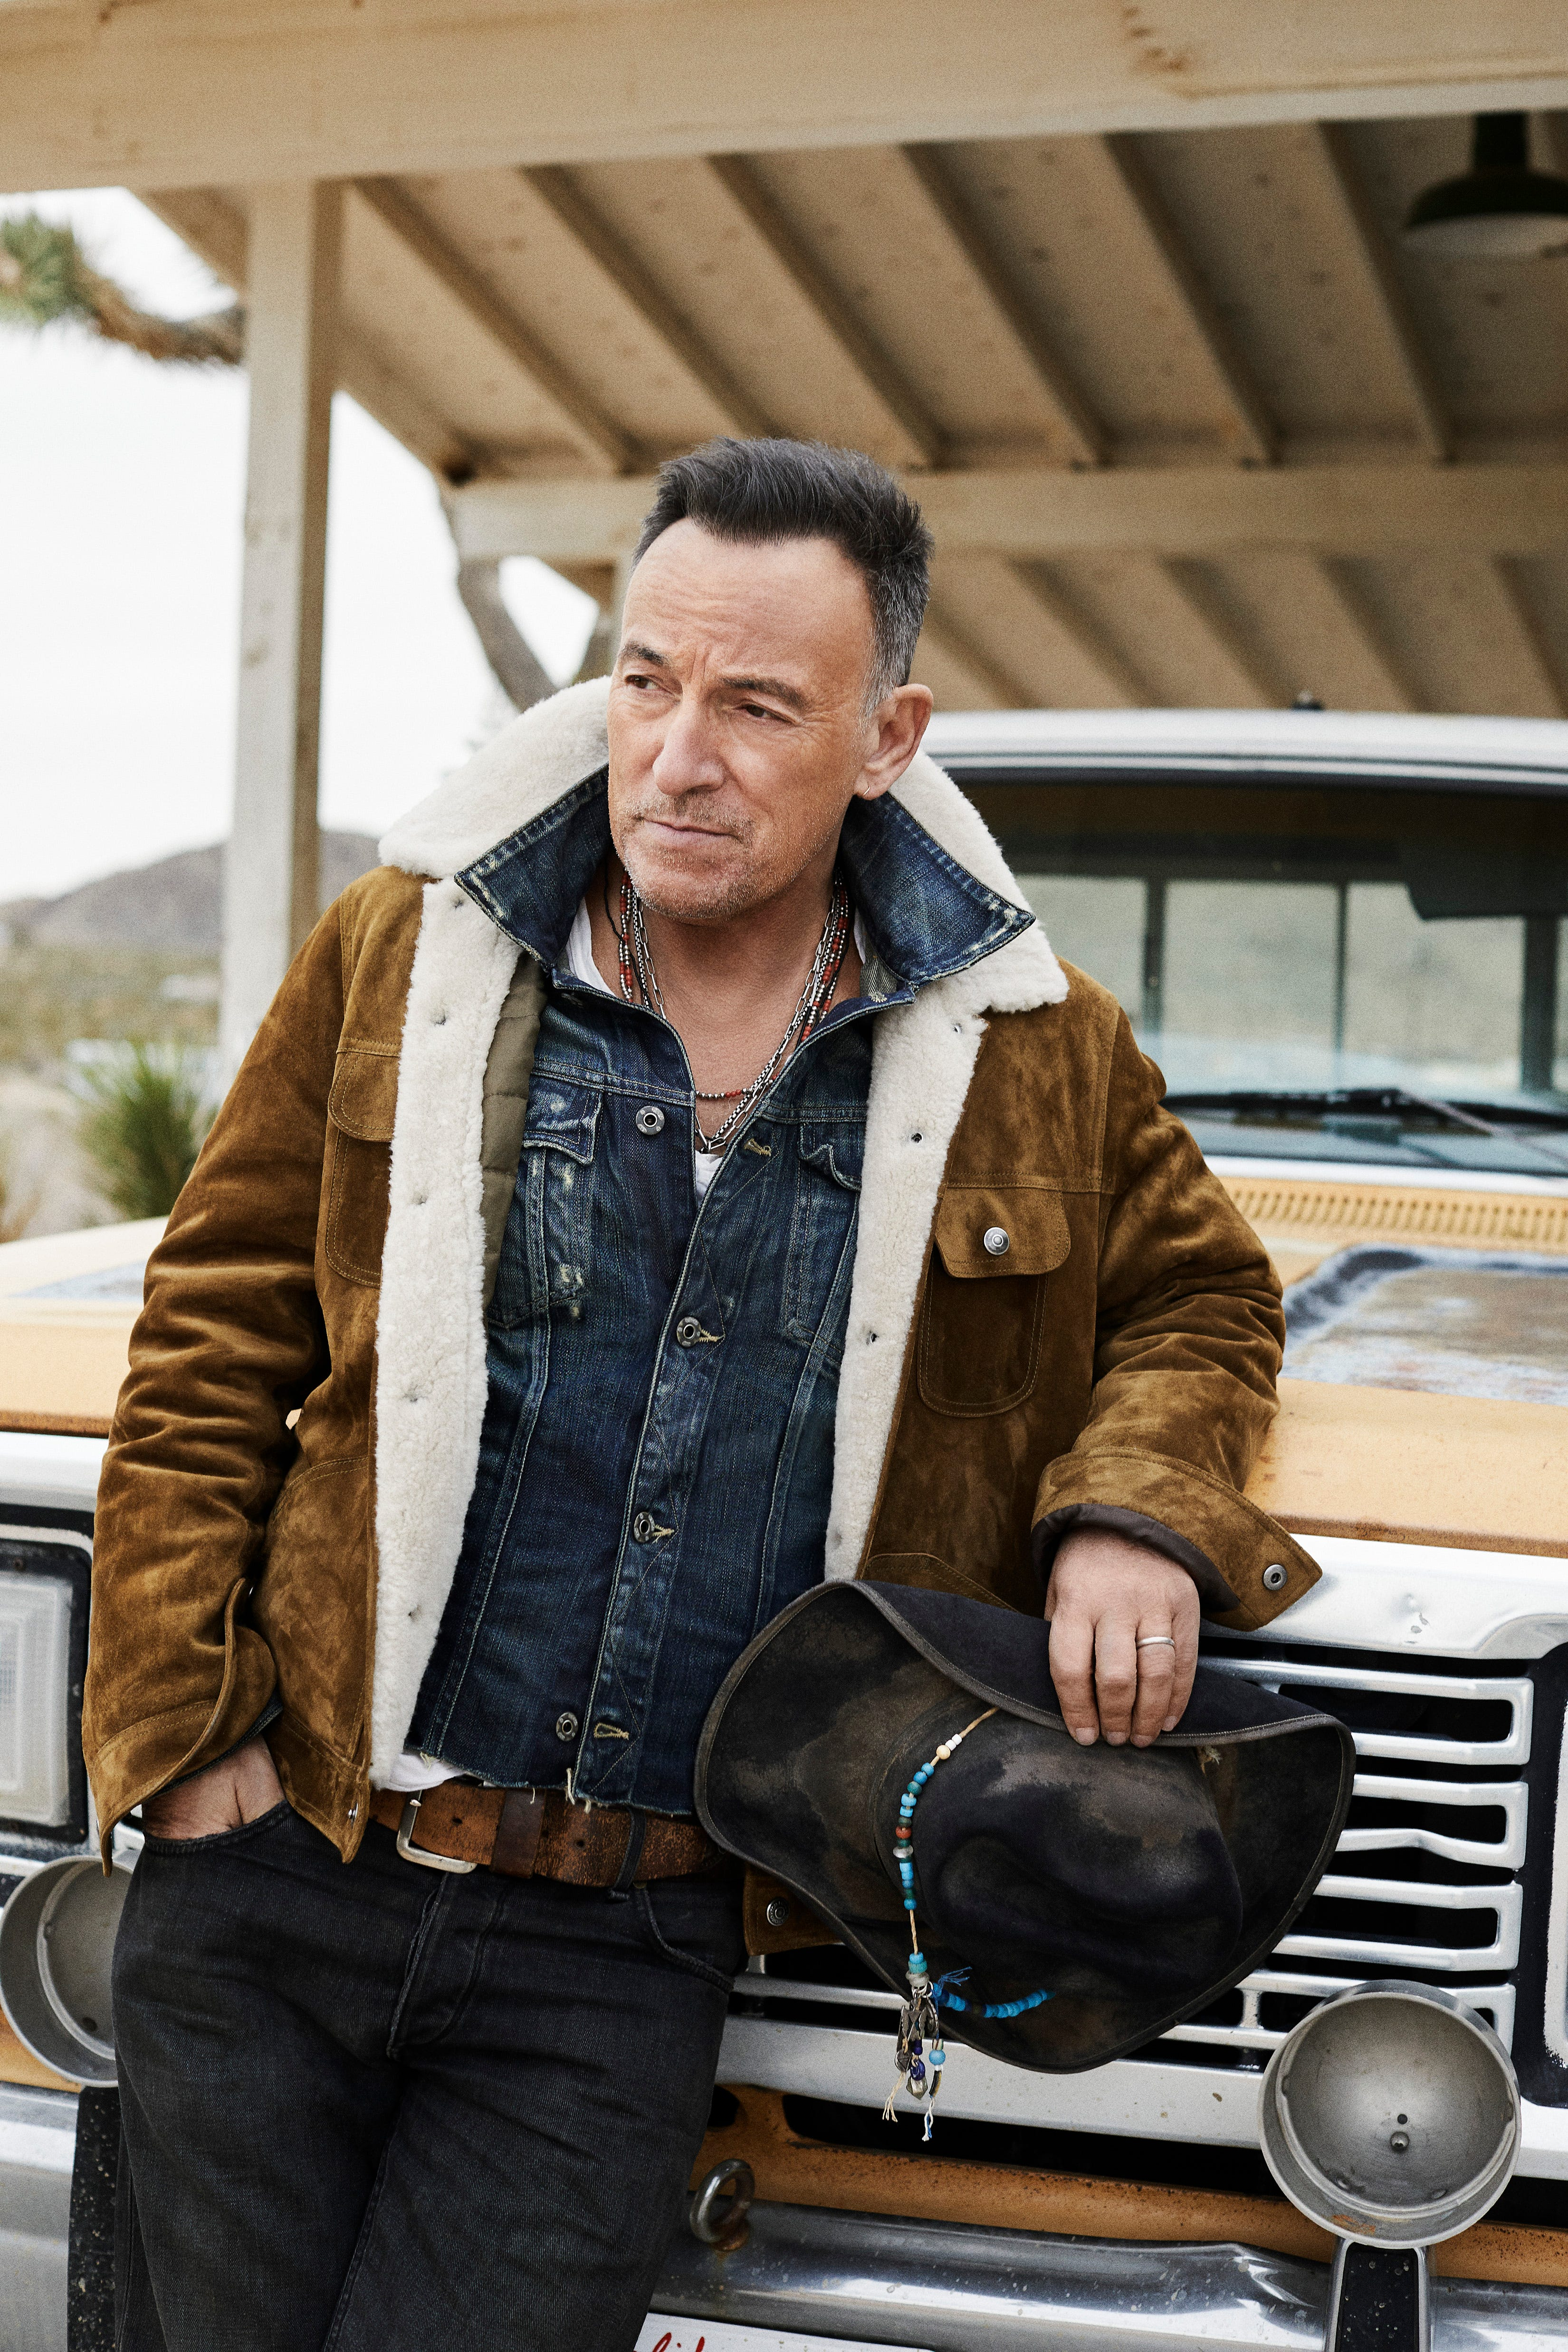 c7bd4565fd5 Bruce Springsteen announces new solo album 'Western Stars' | SPR